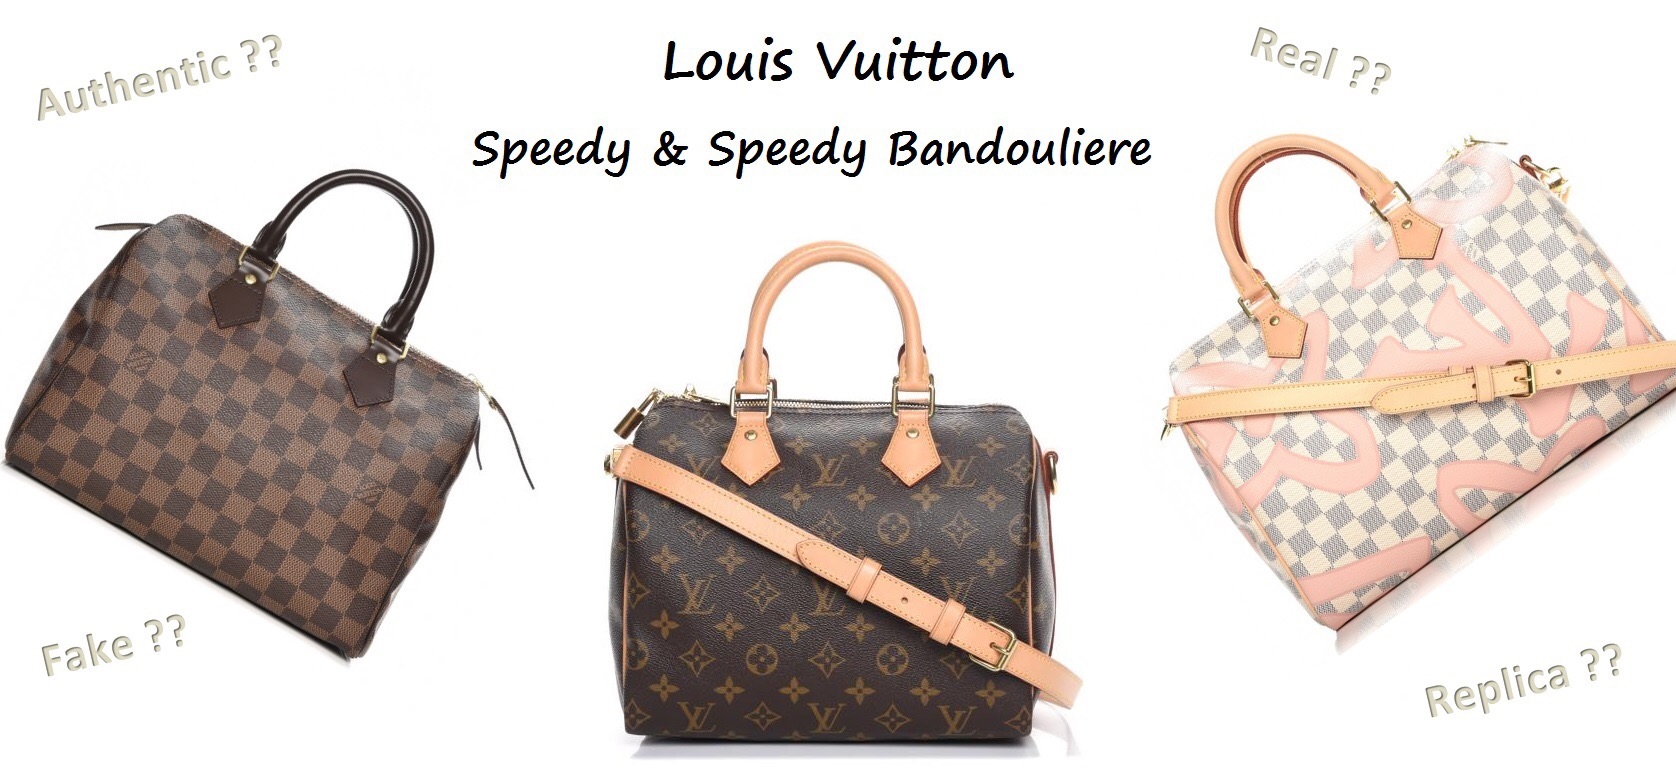 889e3e685720 How to Spot a Fake Louis Vuitton Bag 101 ǀ Speedy   Speedy Bandouliere